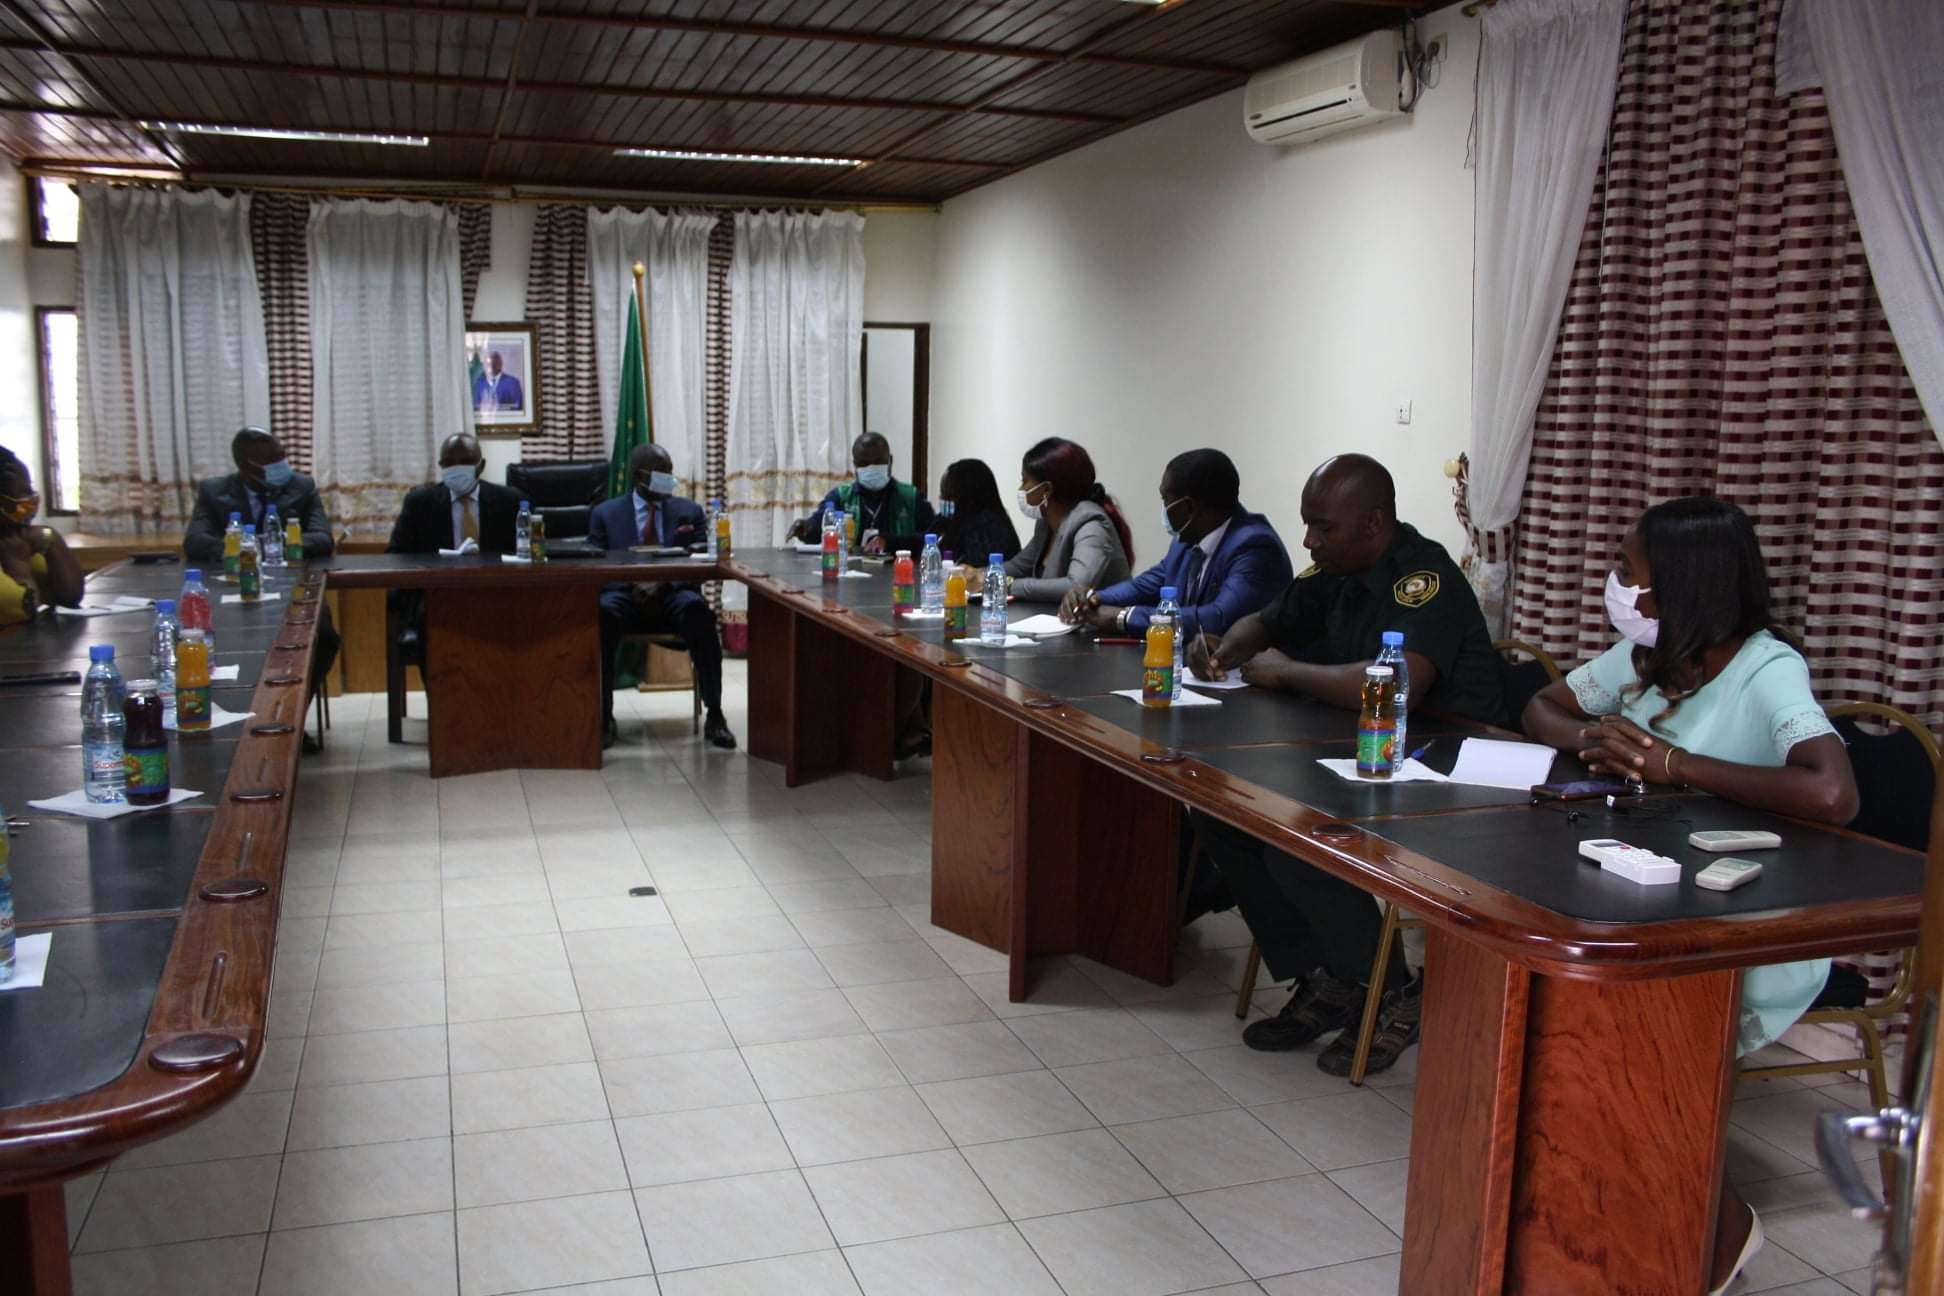 Africa cdc director appreciates actions taken by au iapsc to fight covid-19